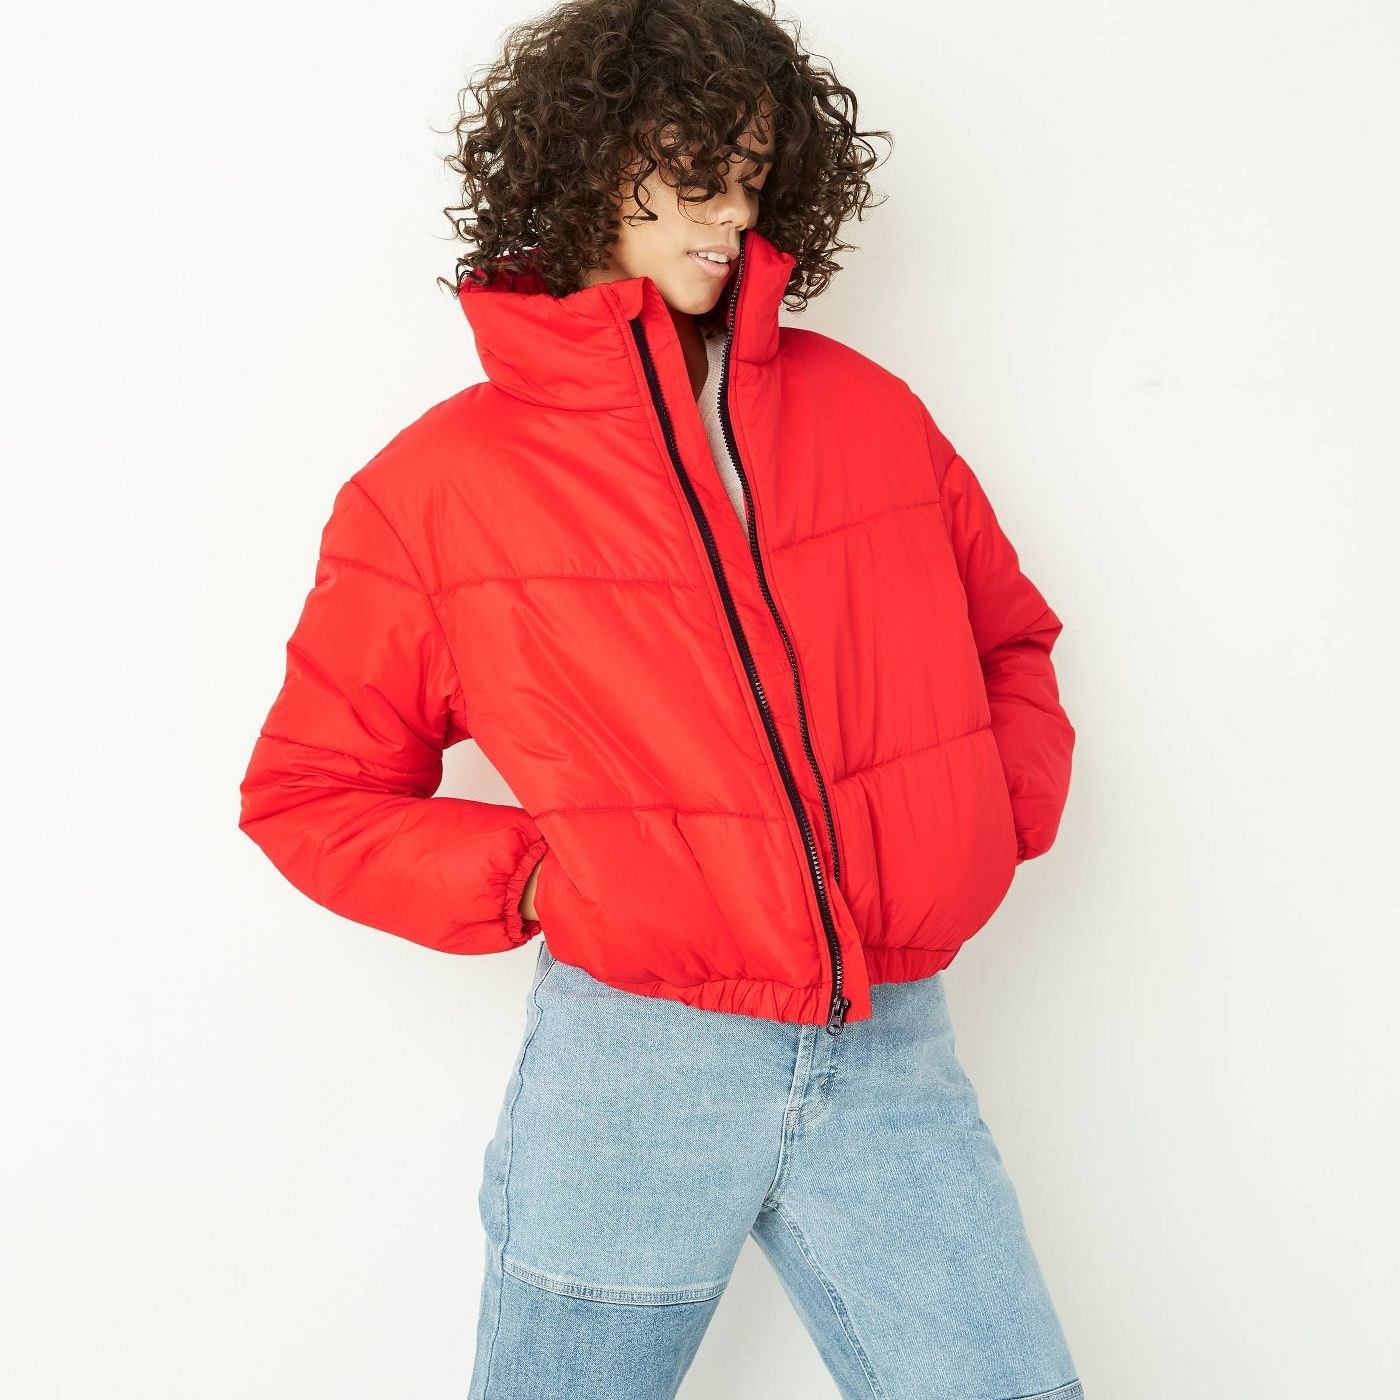 Model in red puffer jacket